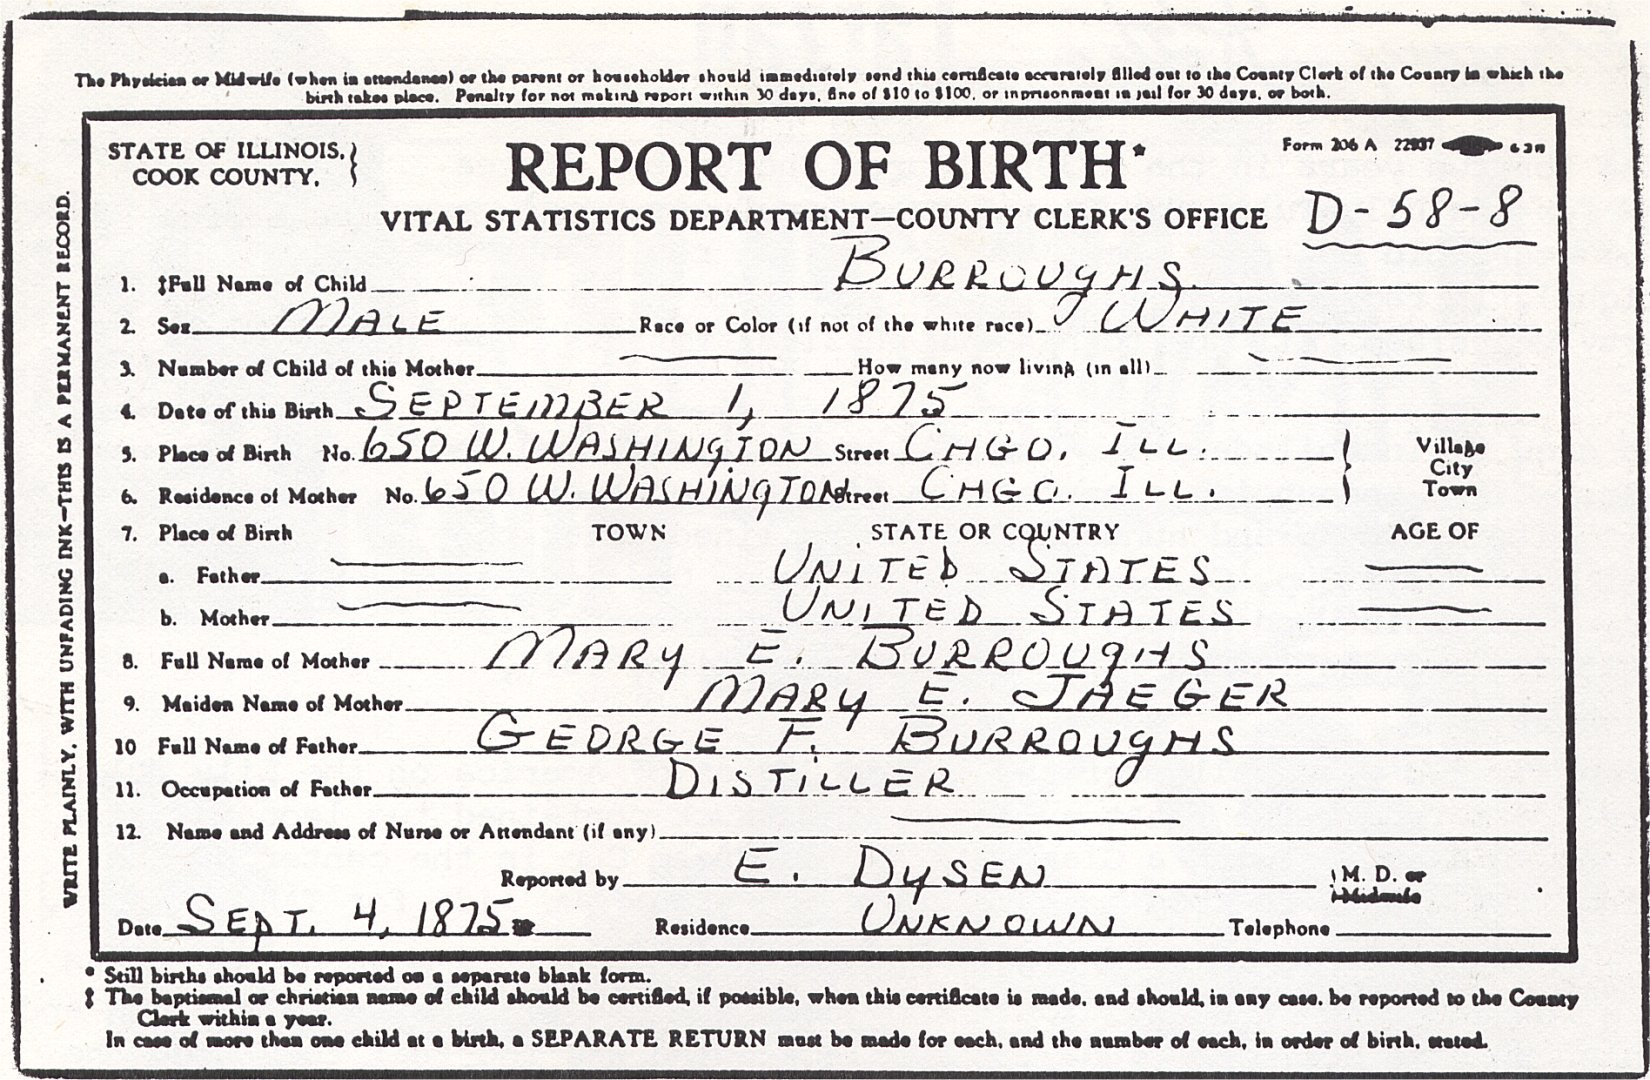 Erbzine 2727 erb eclectica 200905 birth certificate of edgar rice burroughs note his mothers maiden name should be zieger and his fathers middle initial should be t for tyler 1betcityfo Gallery